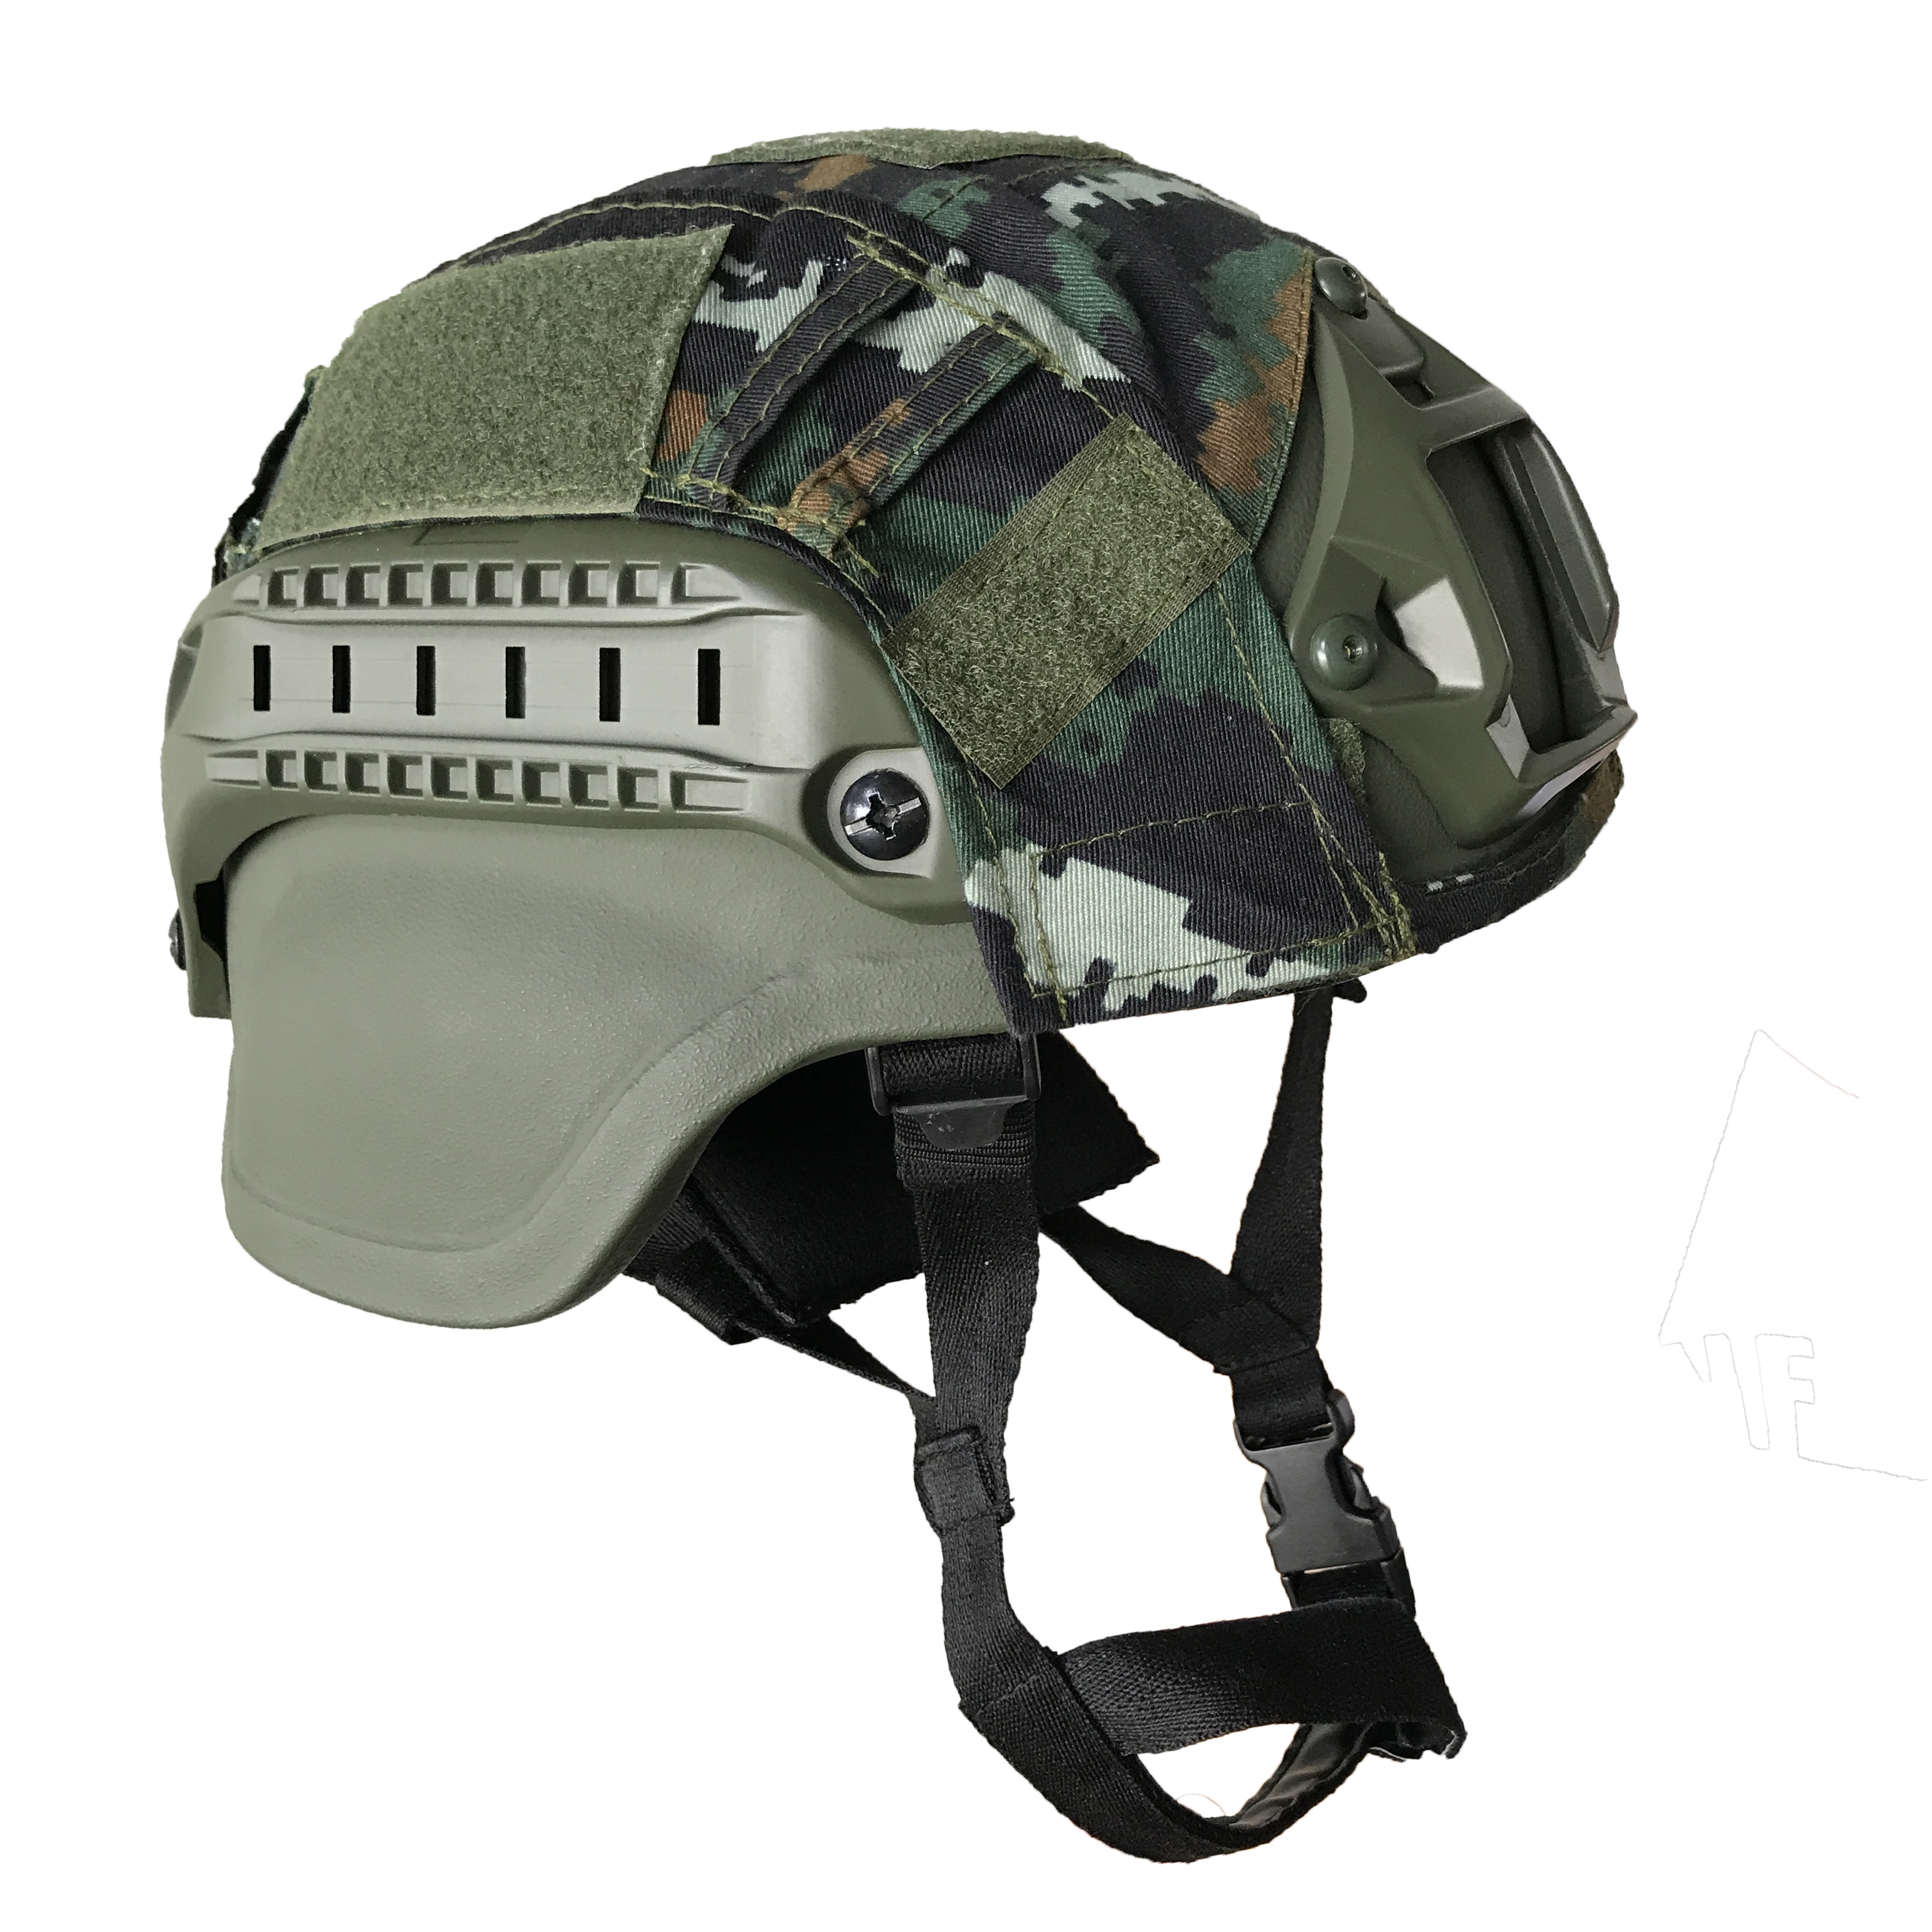 OD MICH 2000 Bulletproof Helmet Level NIJ IIIA Head Protection Aramid Military Ballistic Helmet